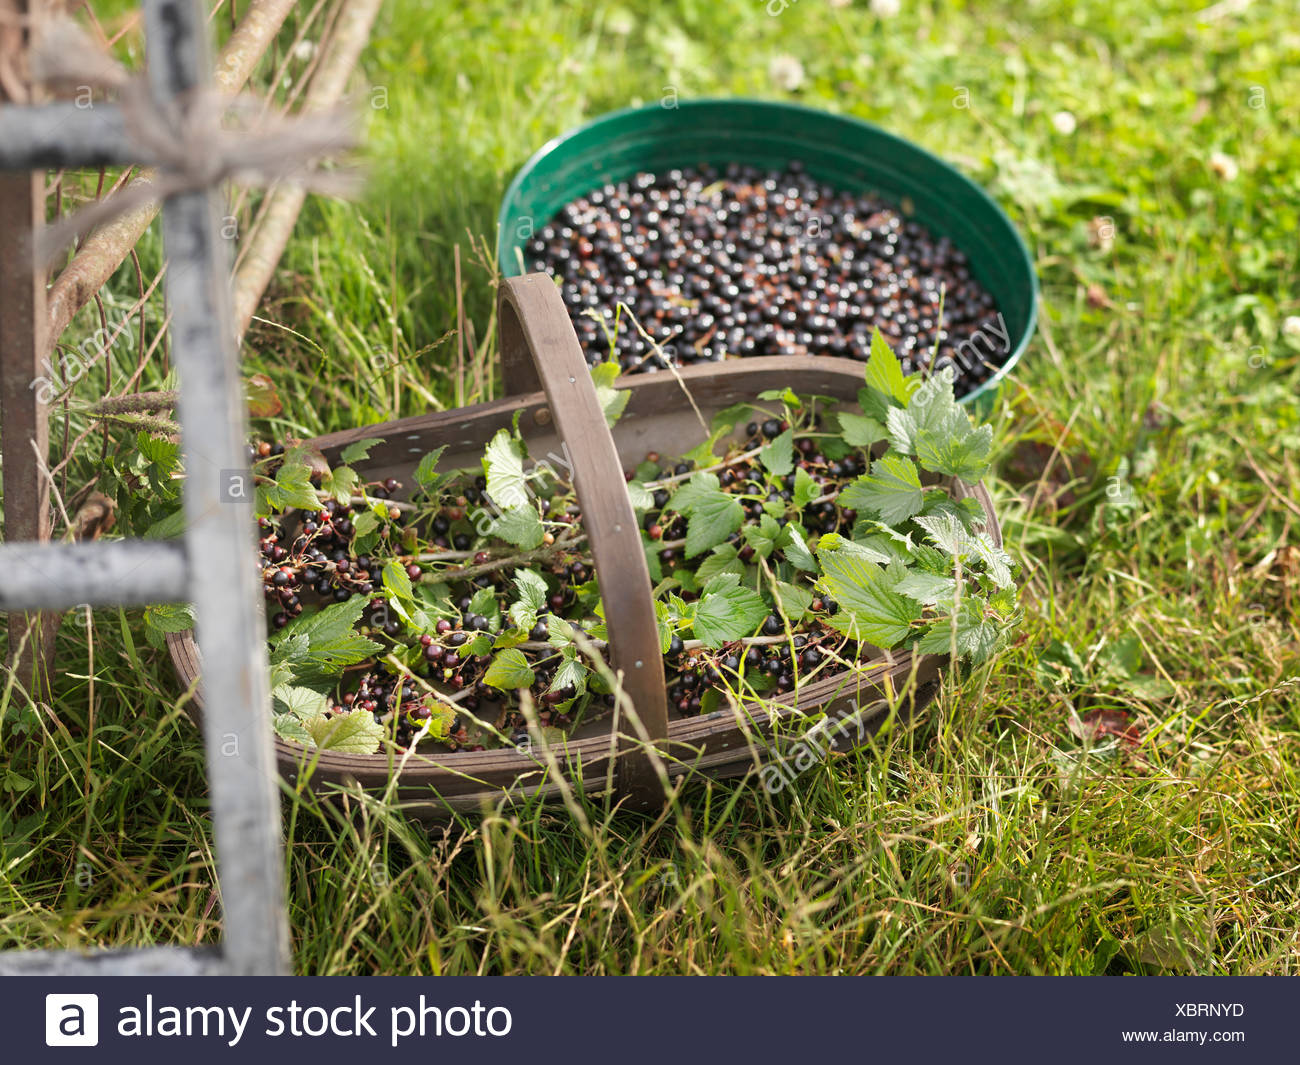 Containers With Harvested Blackcurrants - Stock Image